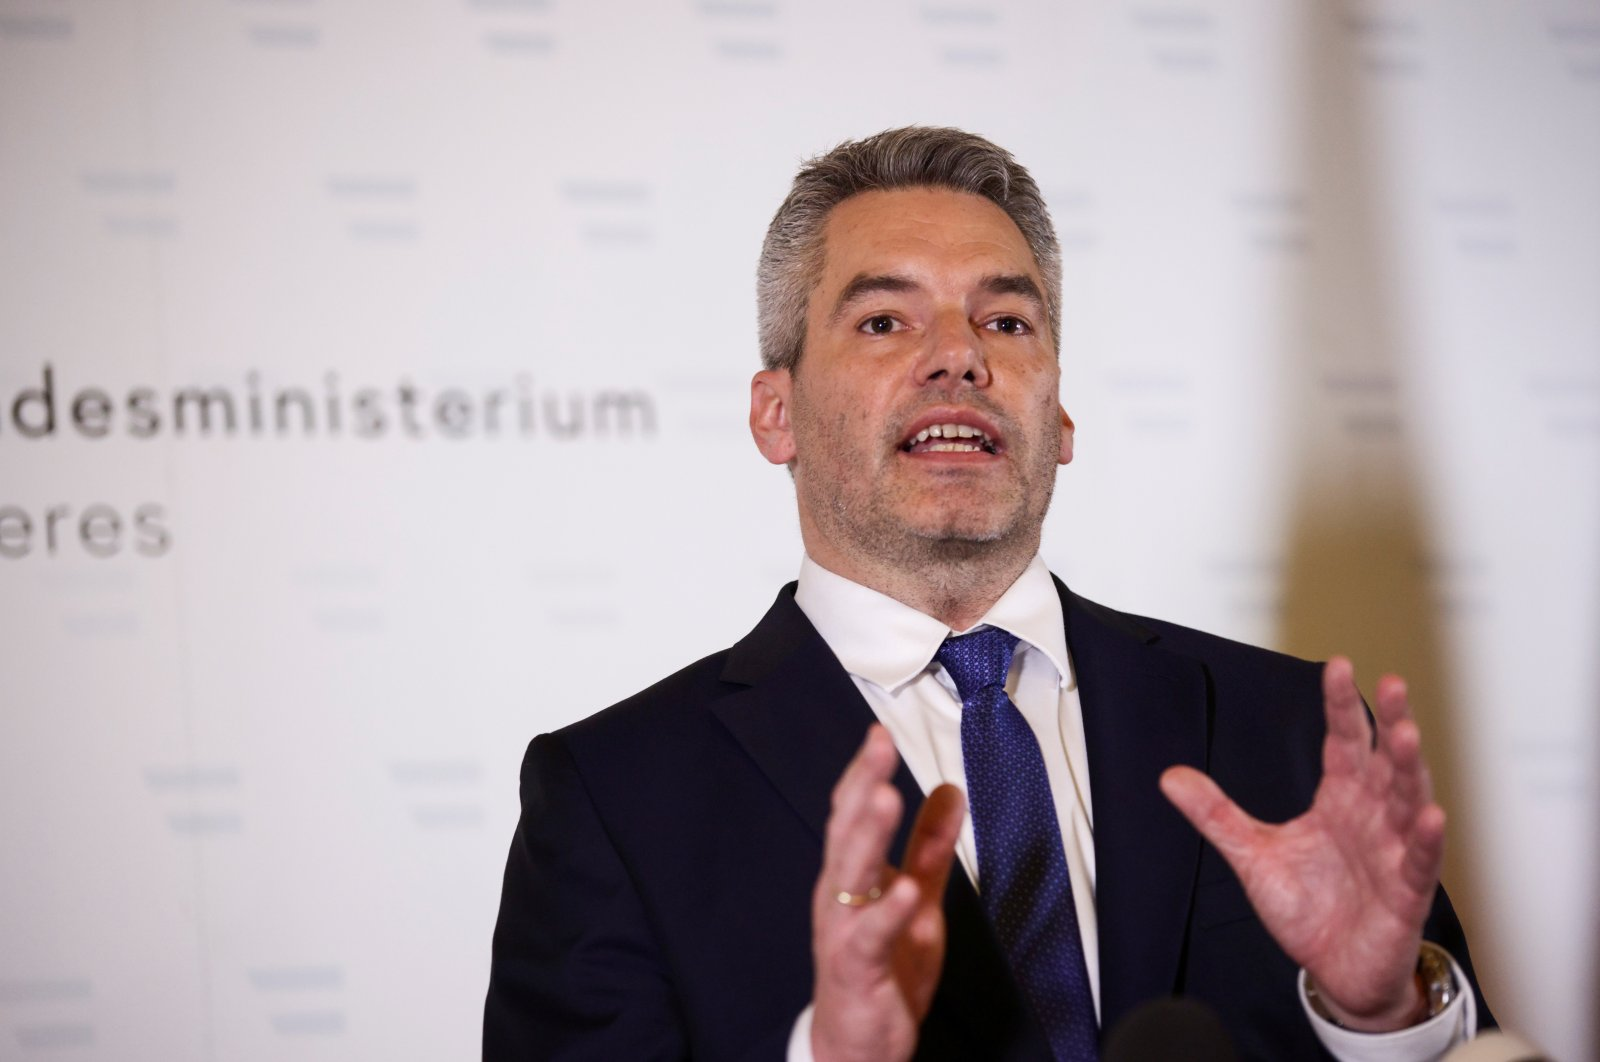 Austrian Interior Minister Karl Nehammer speaks during a news conference at the Interior Ministry in Vienna, Austria, Nov. 3, 2020. (Reuters Photo)